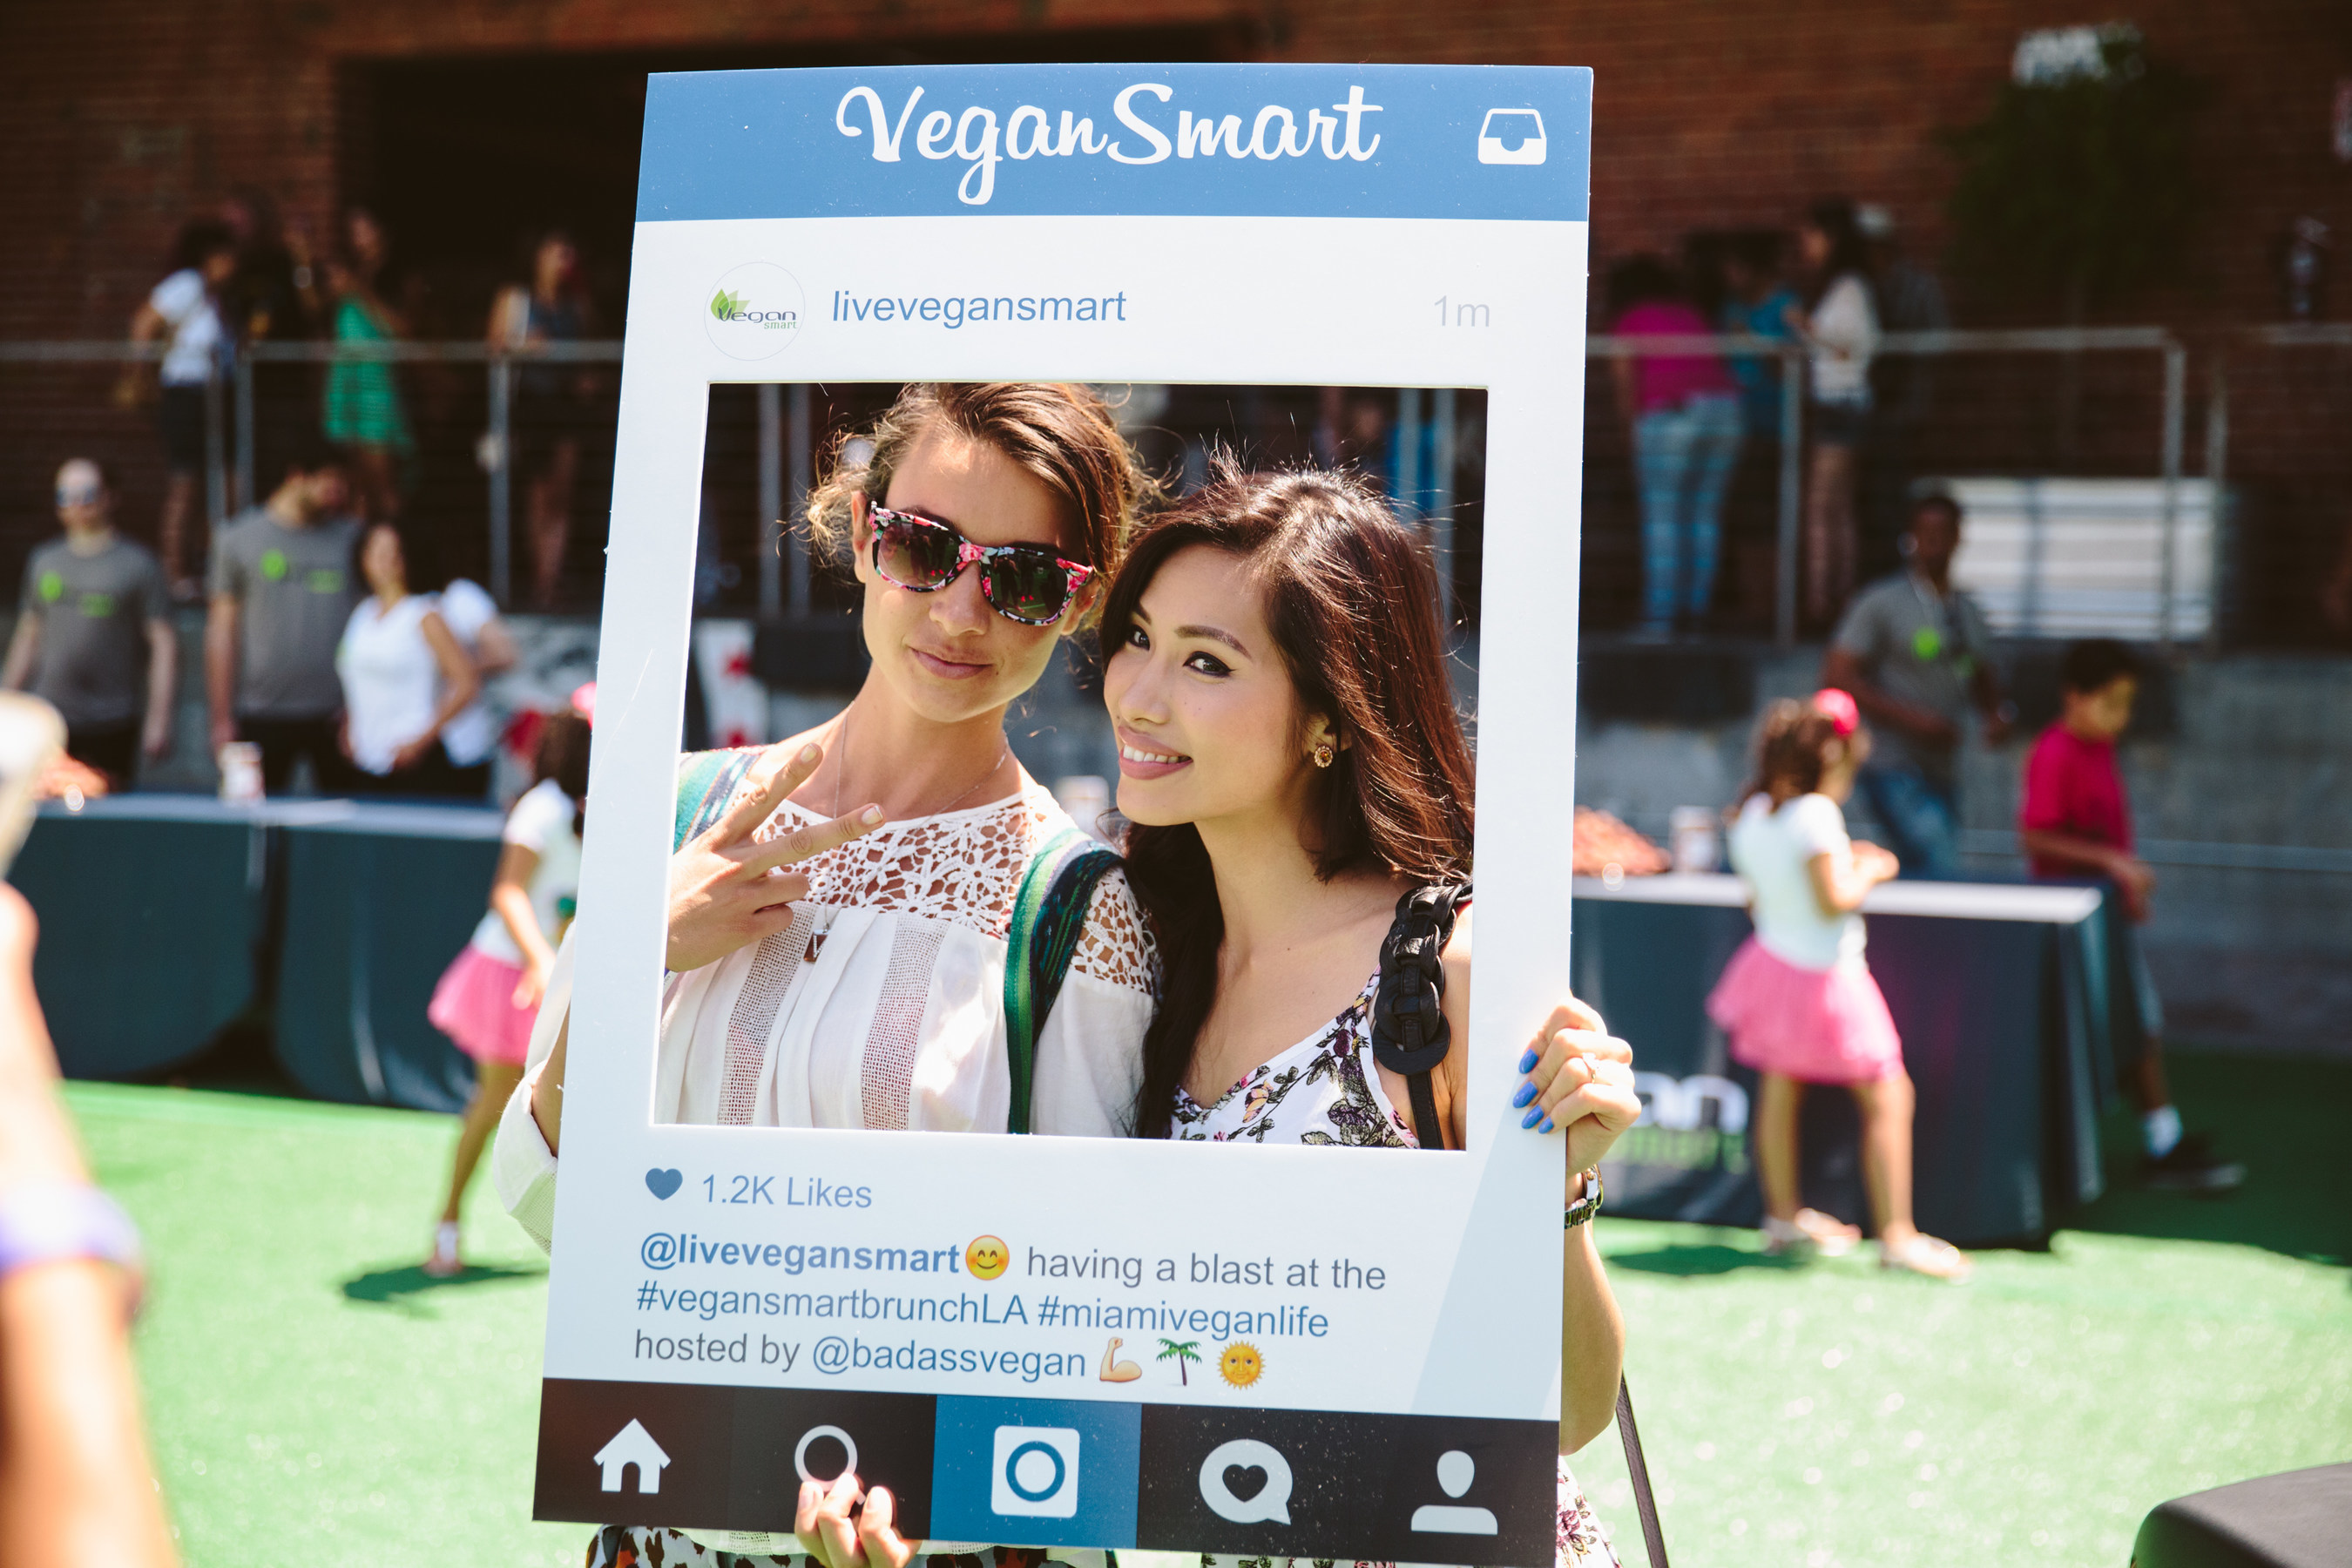 VeganSmart Helps to Spread the Vegan Word with Series of Fun Brunch Events